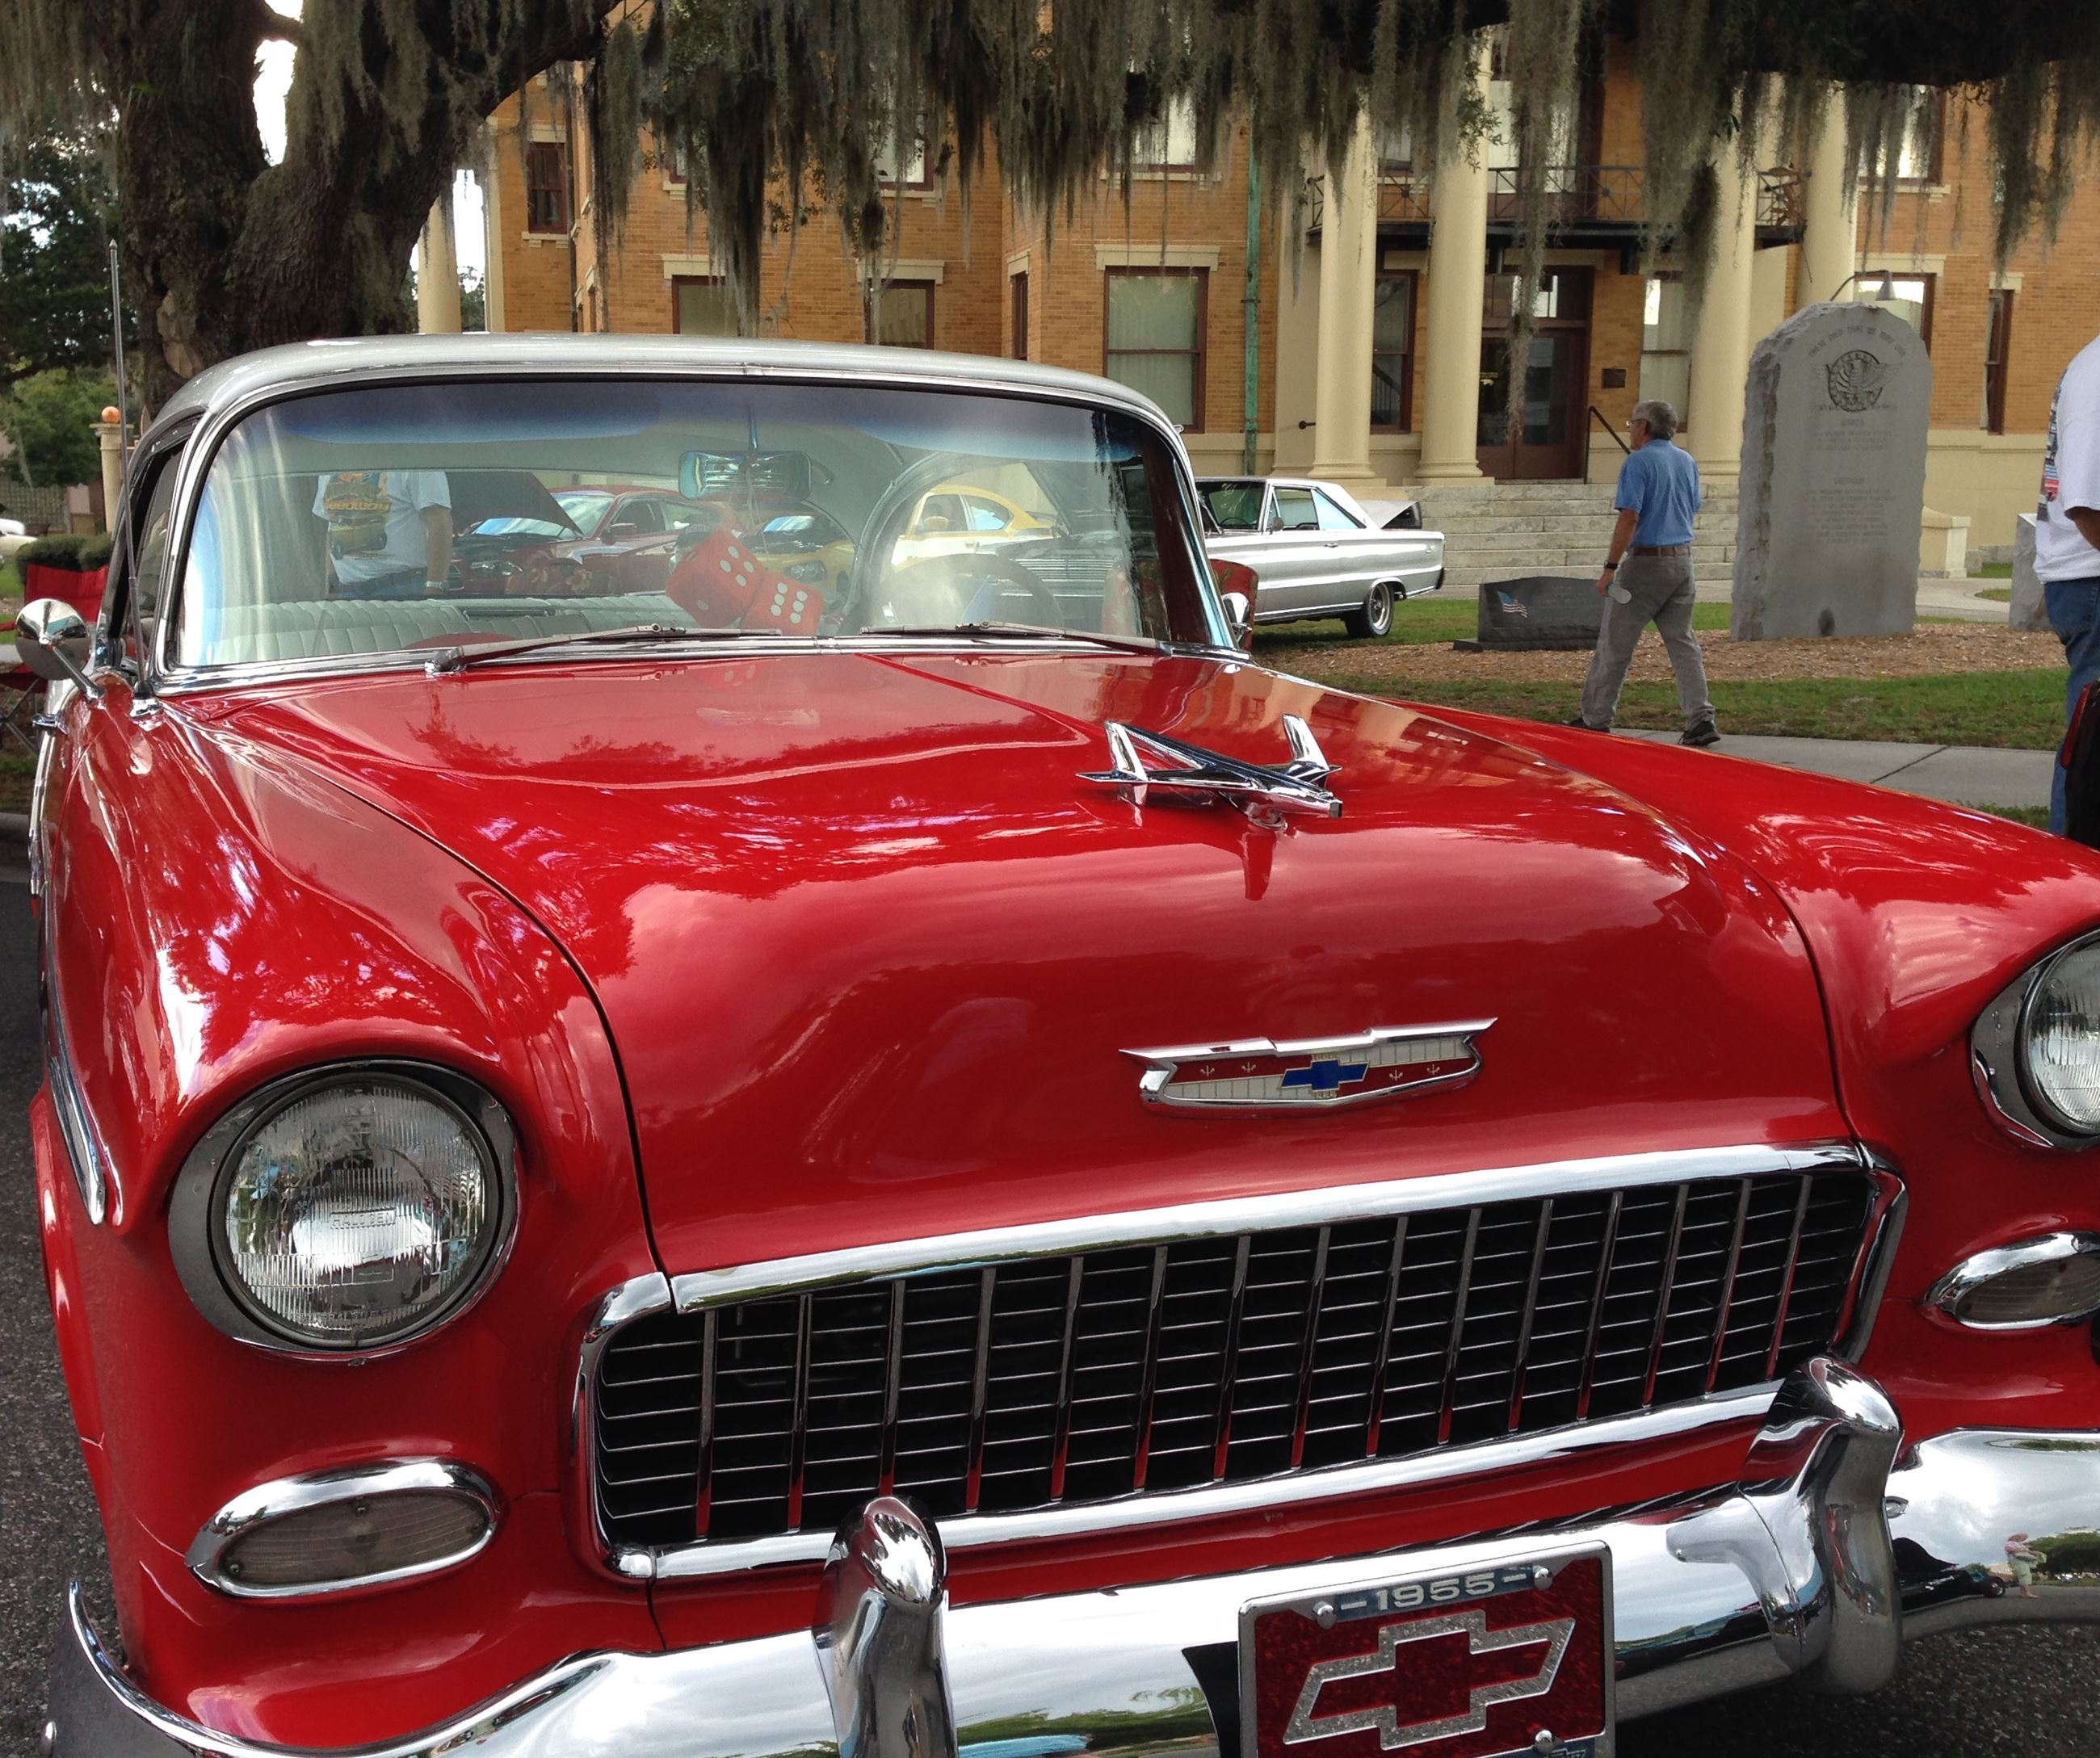 red car at courthouse